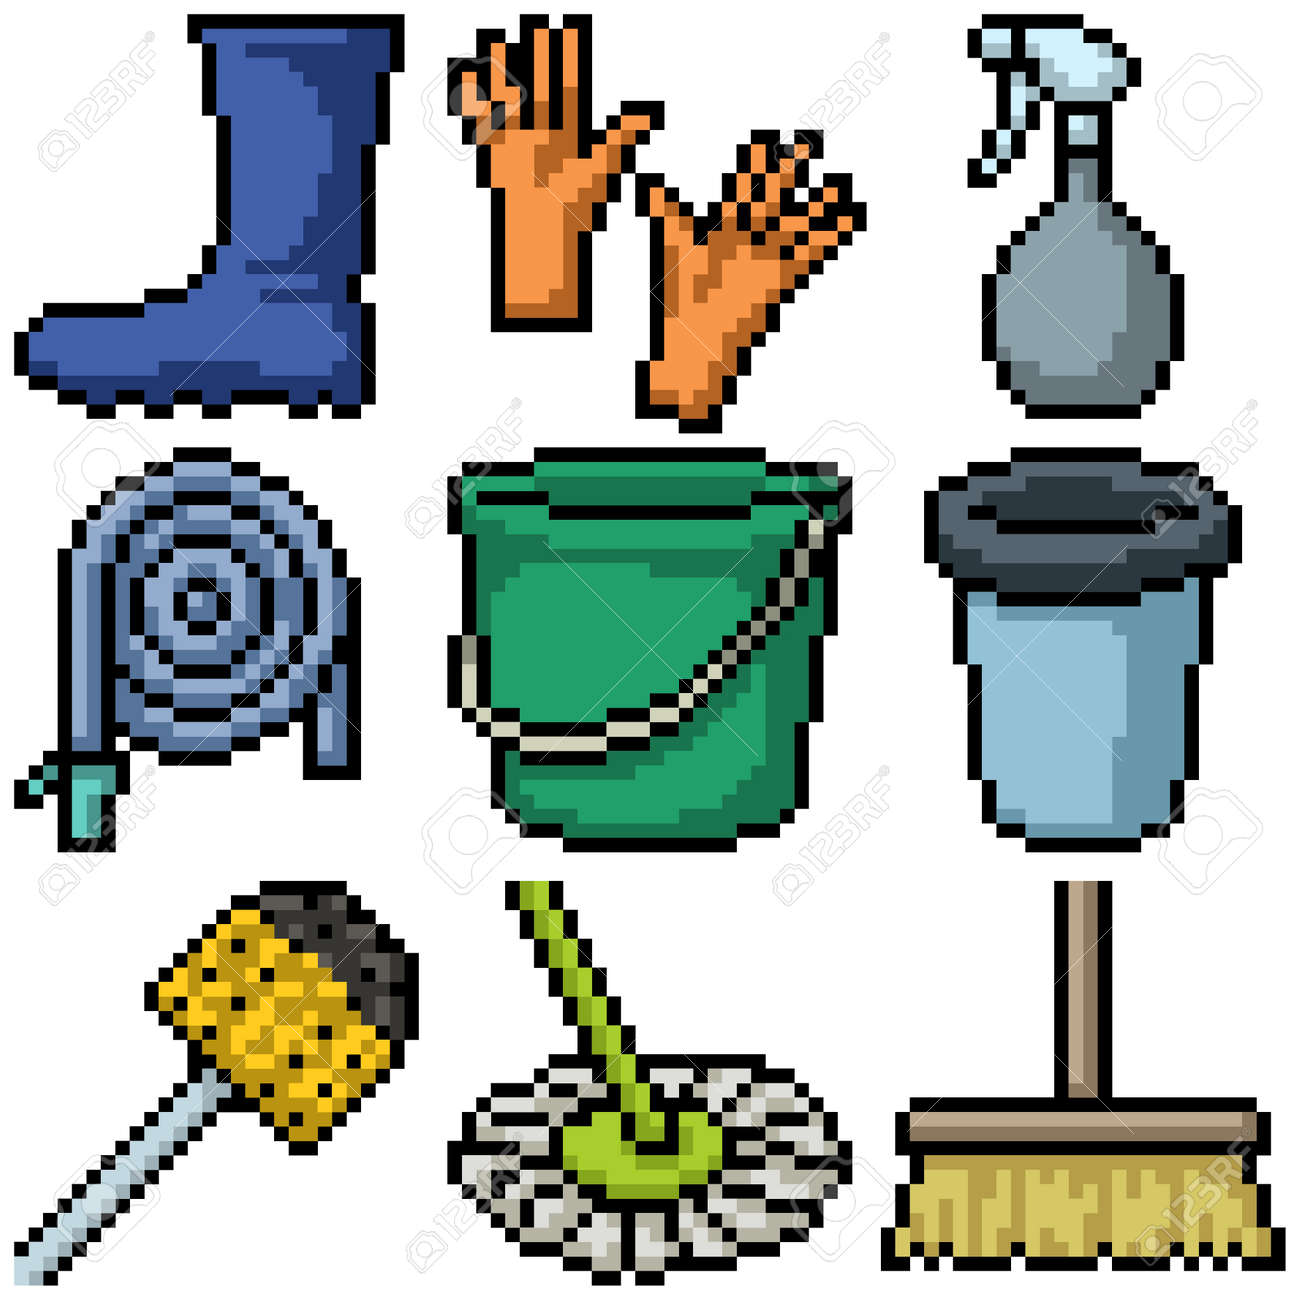 pixel art of house cleaning tools - 171272453